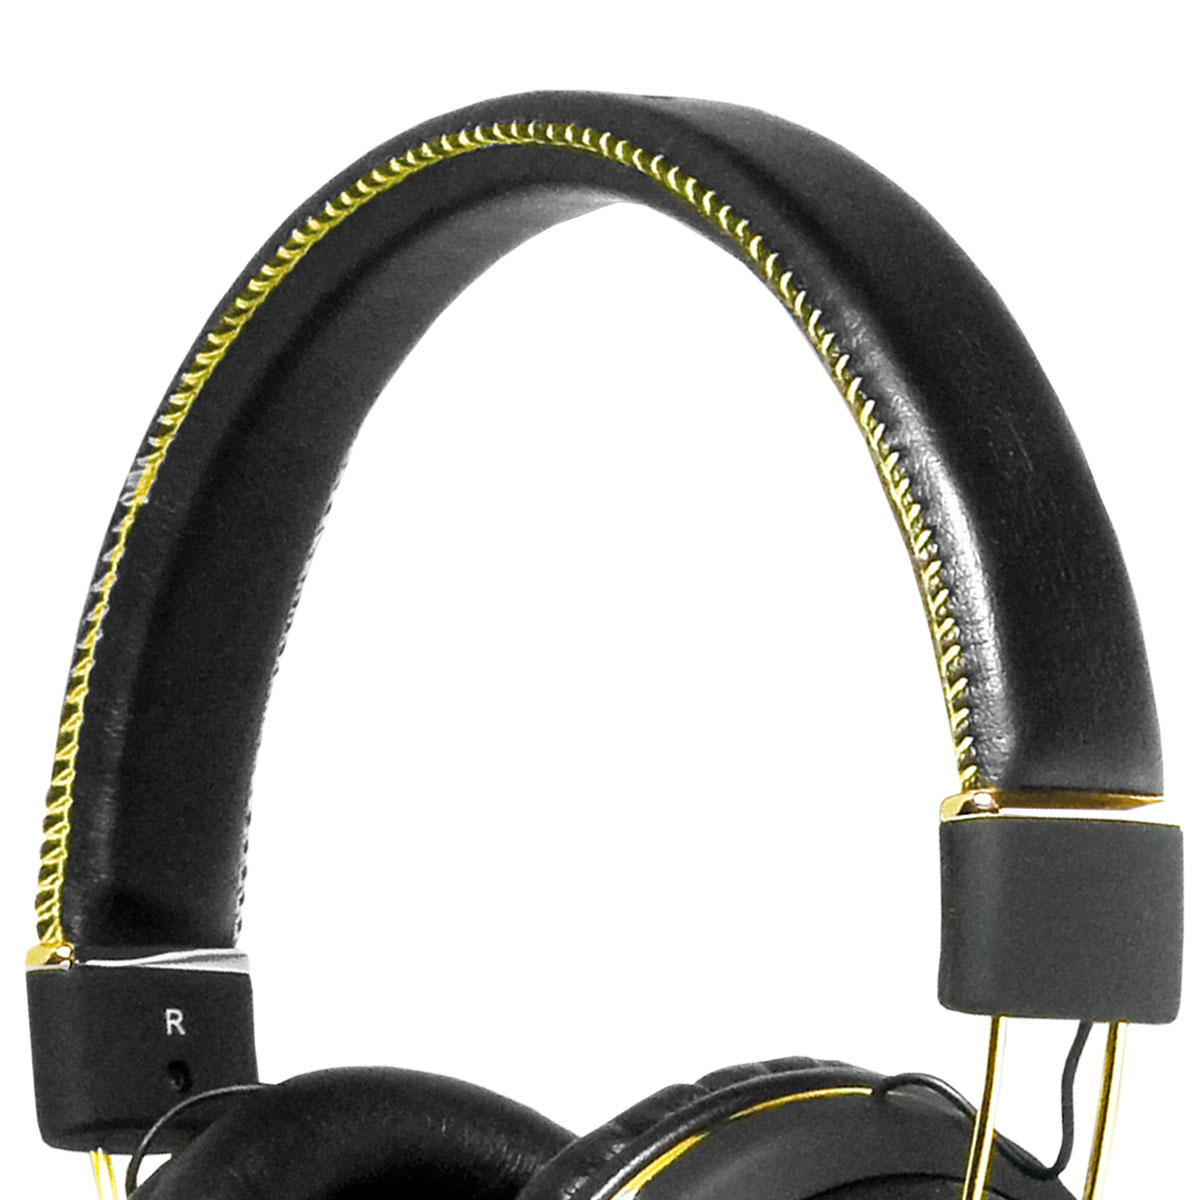 CD67 - Fone de Ouvido Over-ear CD 67 - Yoga